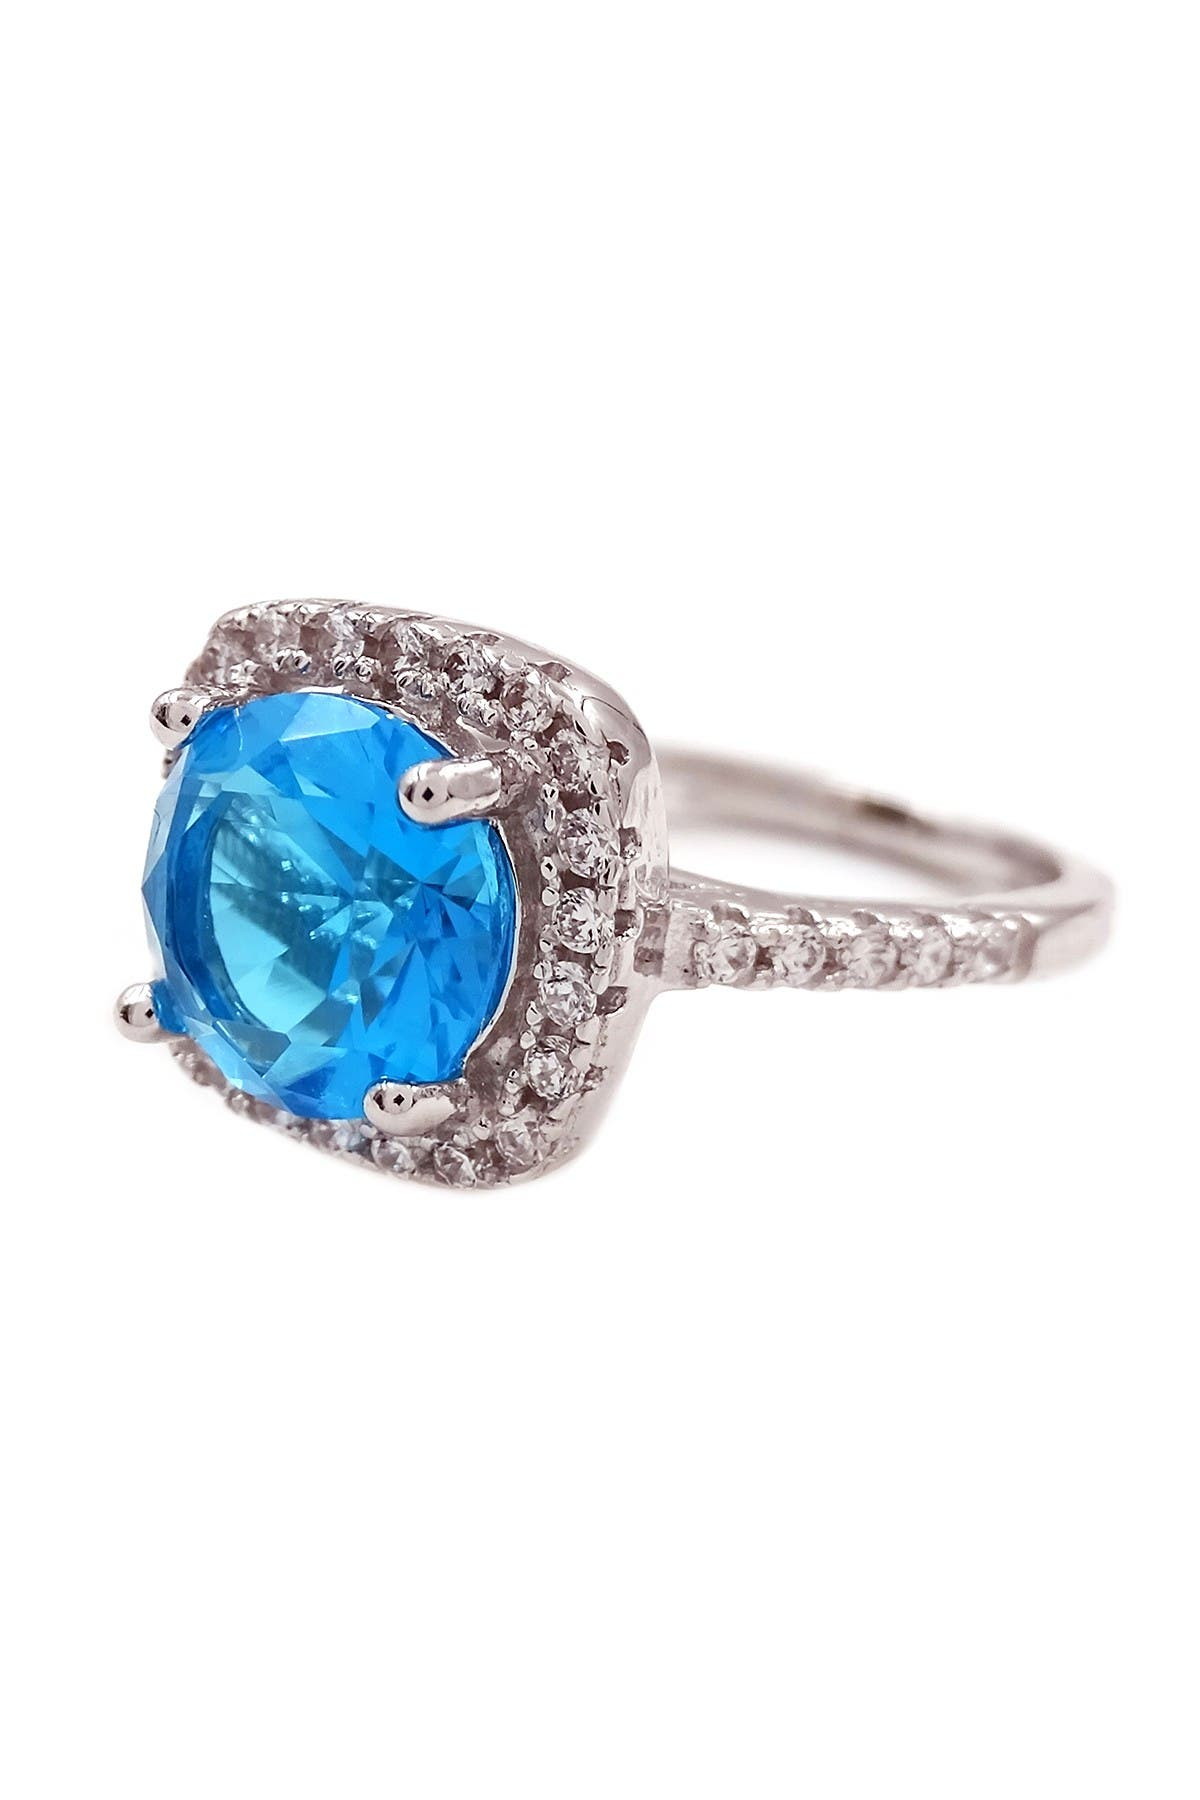 Image of Savvy Cie Sterling Silver Cushion Blue Topaz Cocktail Ring